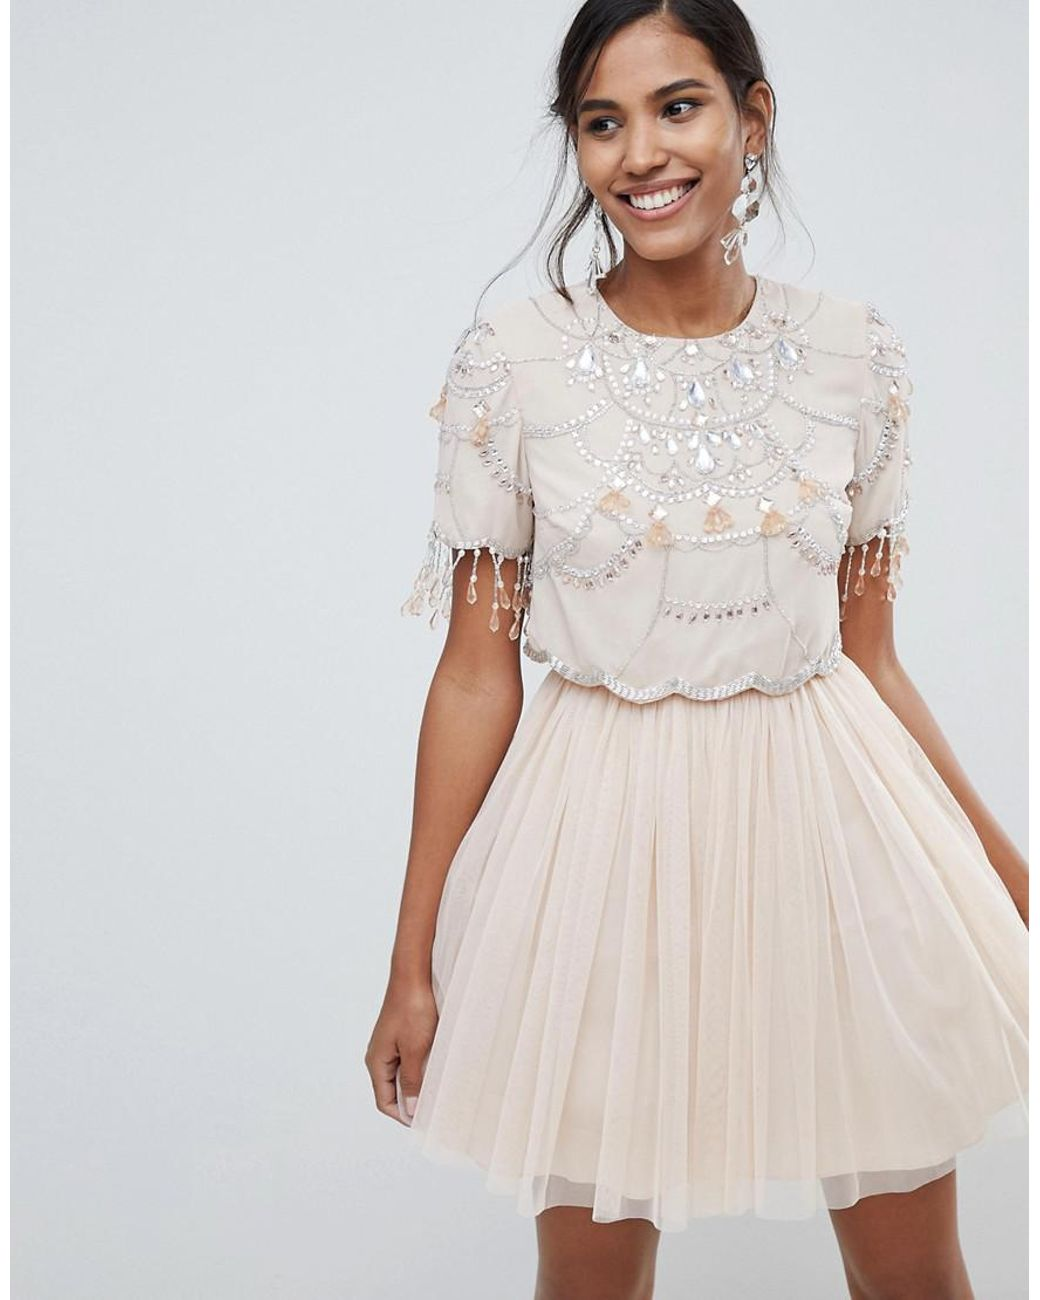 6de4426b1c76b9 Long-Touch to Zoom. Long-Touch to Zoom. 1; 2. ASOS - Natural Crop Top  Fringe Embellishment Tulle Mini Dress ...